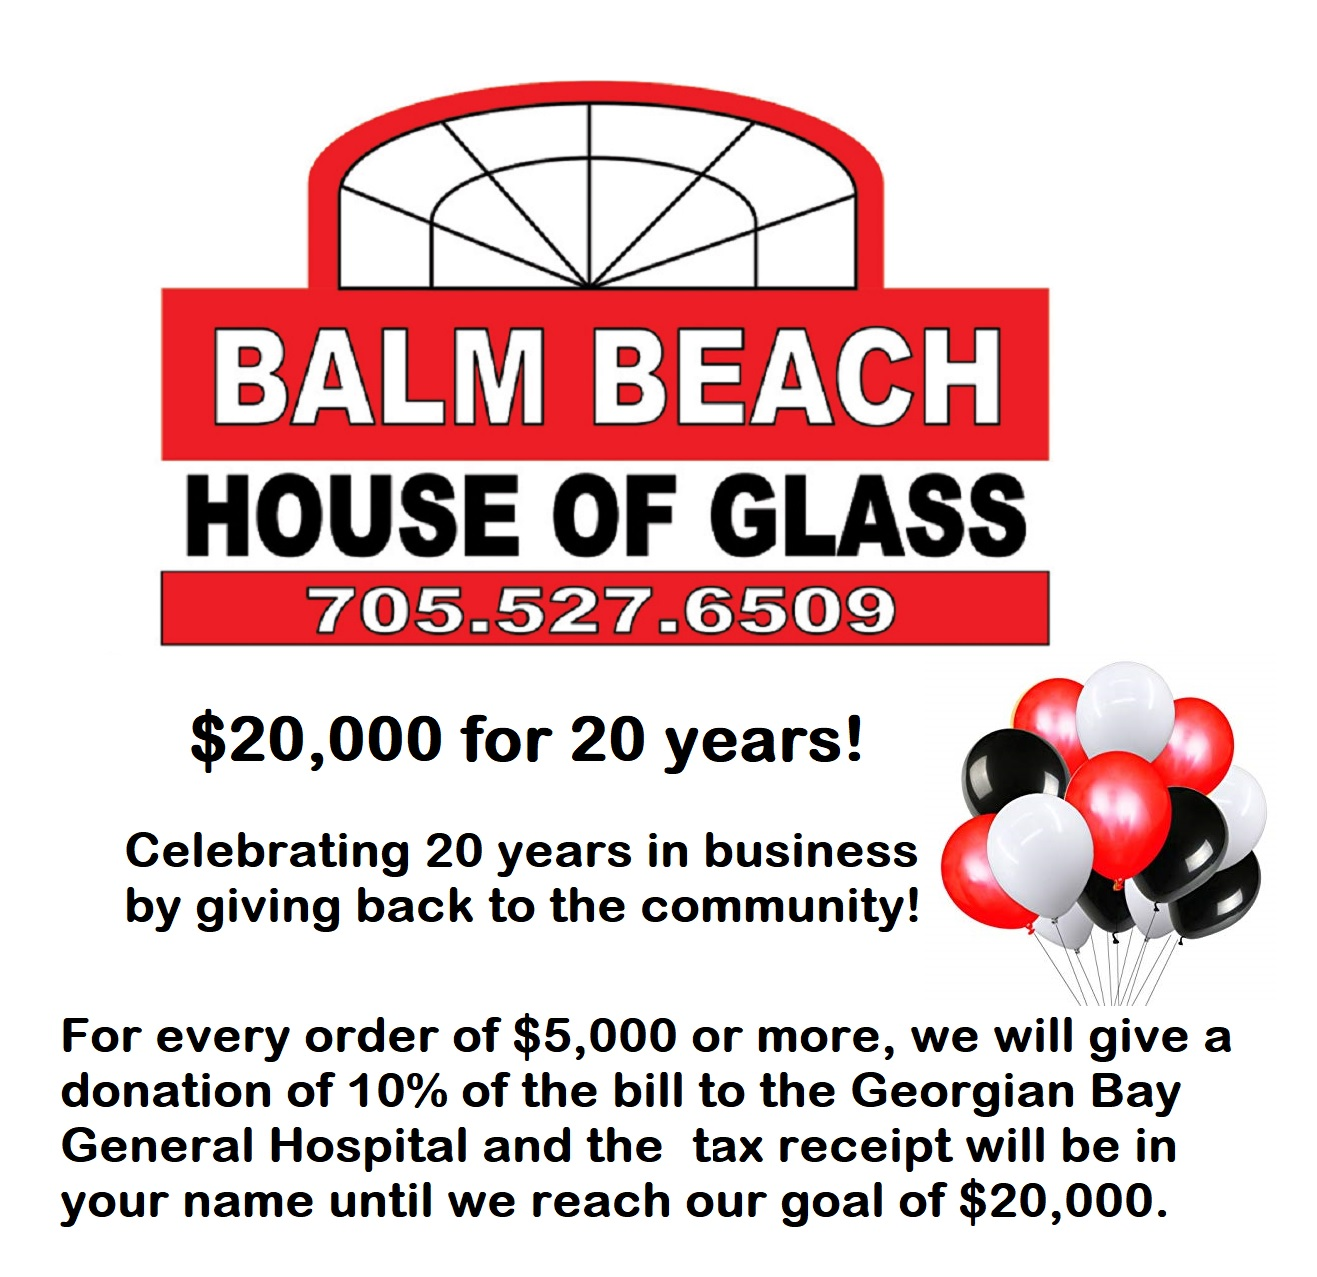 Balm Beach Glass: Celebrating 20 years in Business